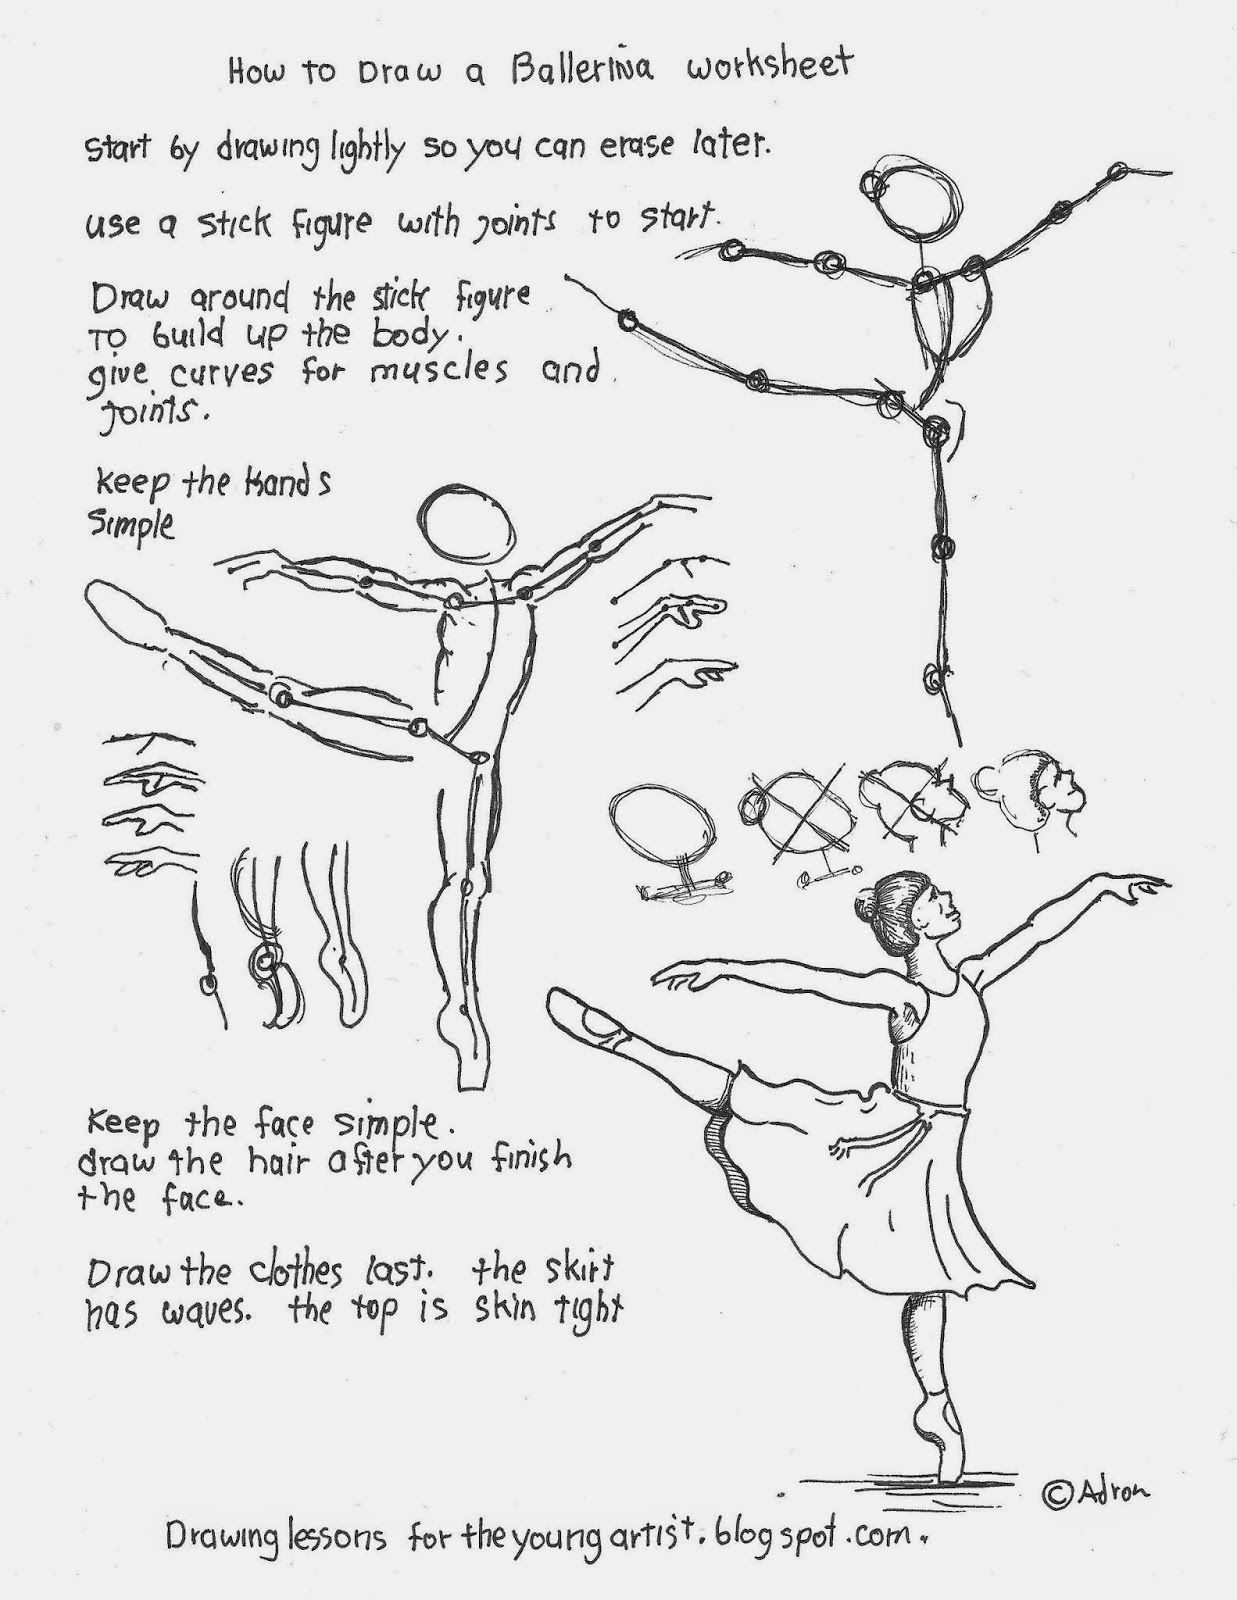 how to draw a ballerina on one toe worksheet free printable drawing lesson how to draw worksheets for young artist